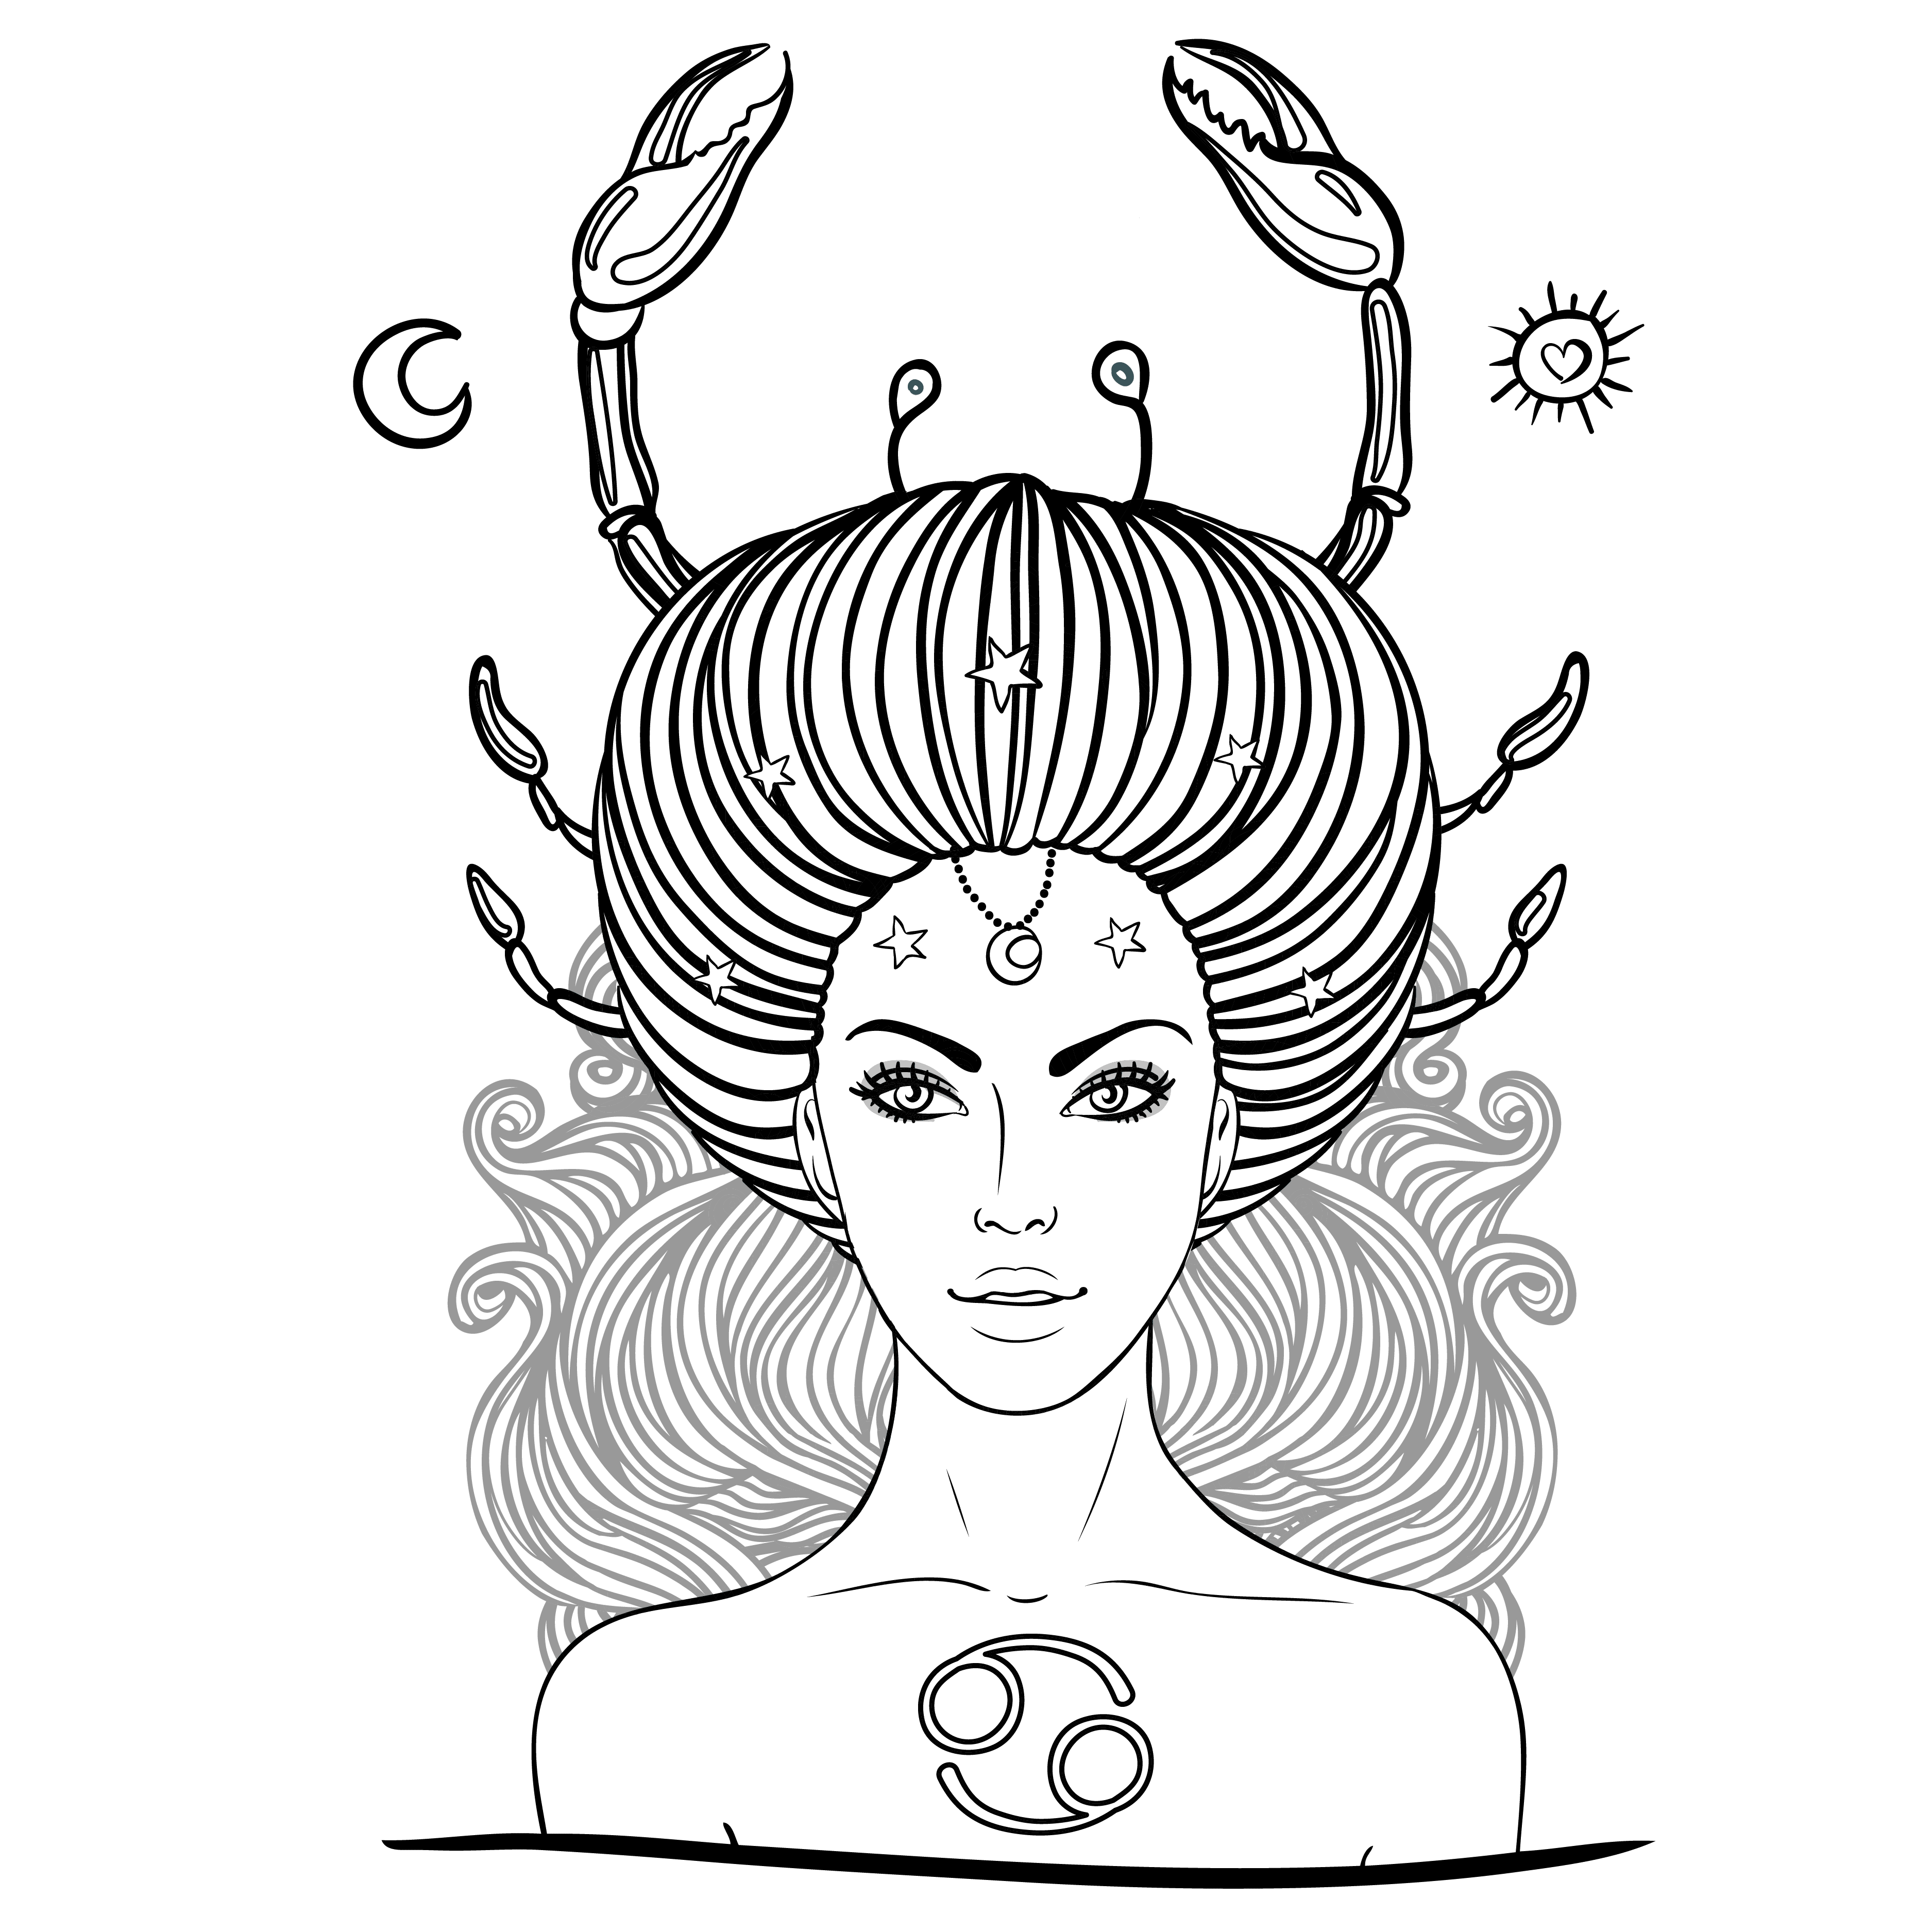 Zodiac drawing female. Cancer astrological sign coloring